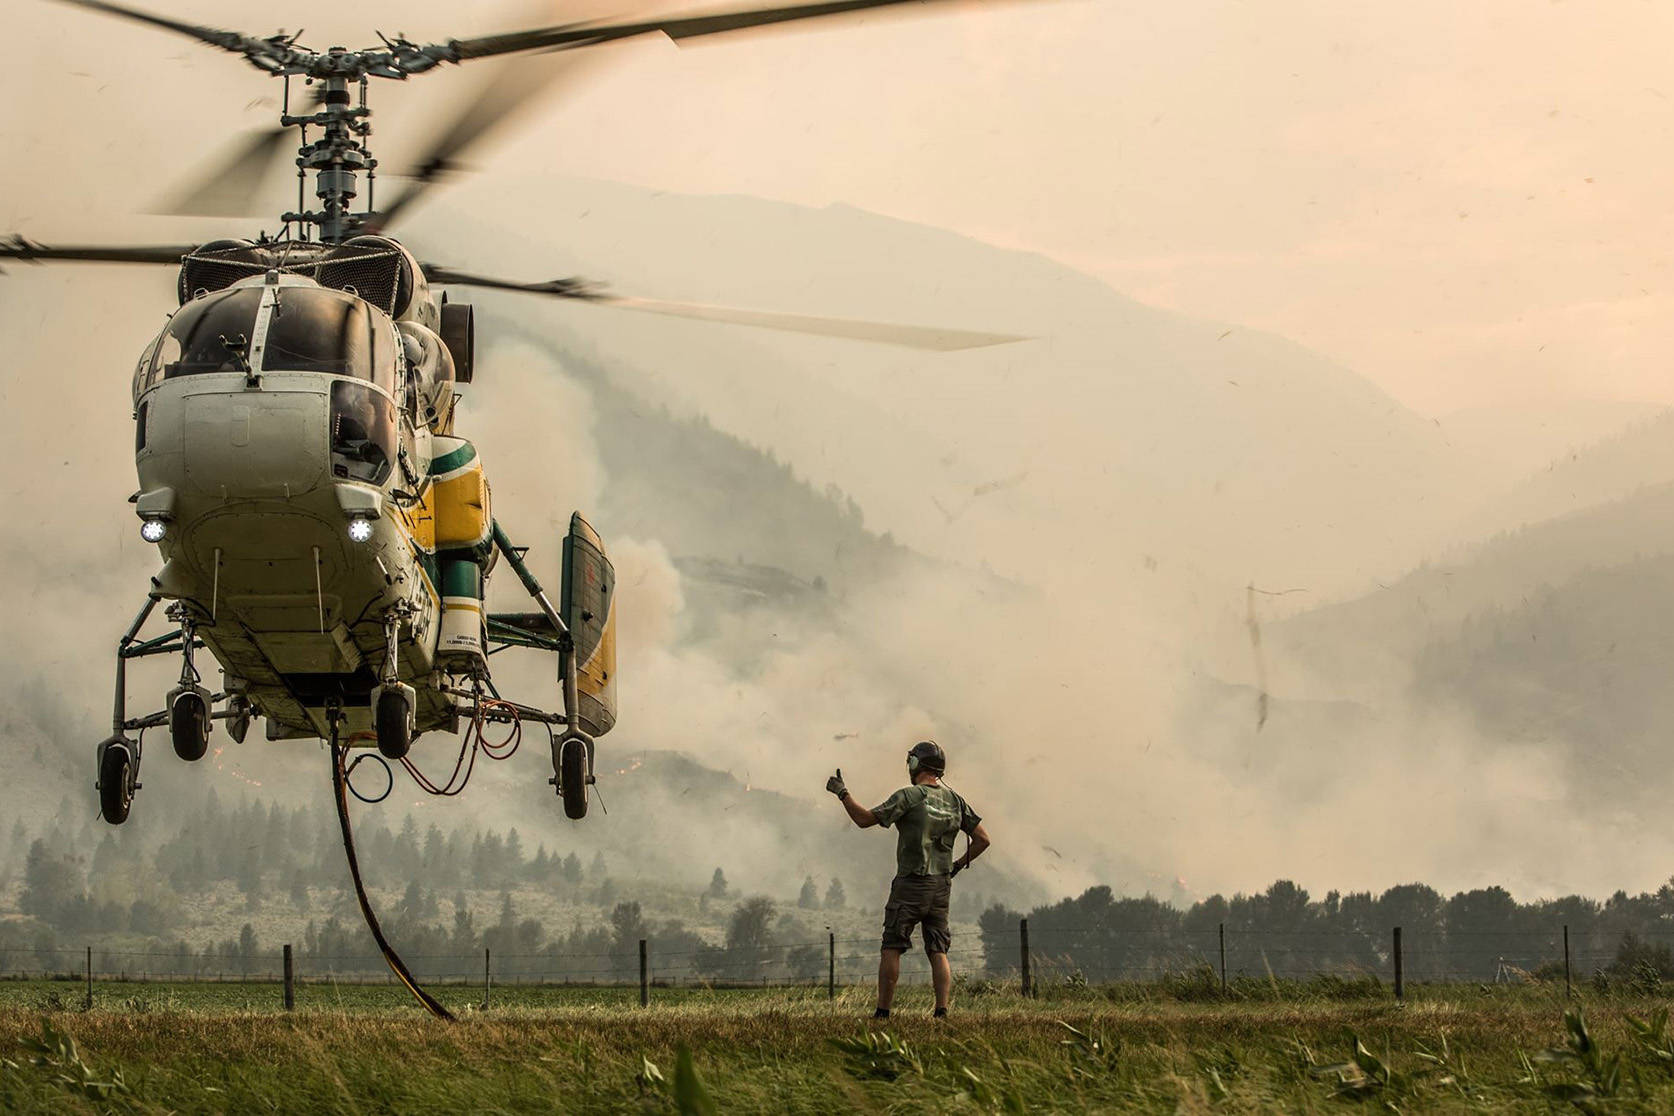 A BC Wildfire helicopter prepares for take off. (Joe Lebeau/Hashmark Photography)